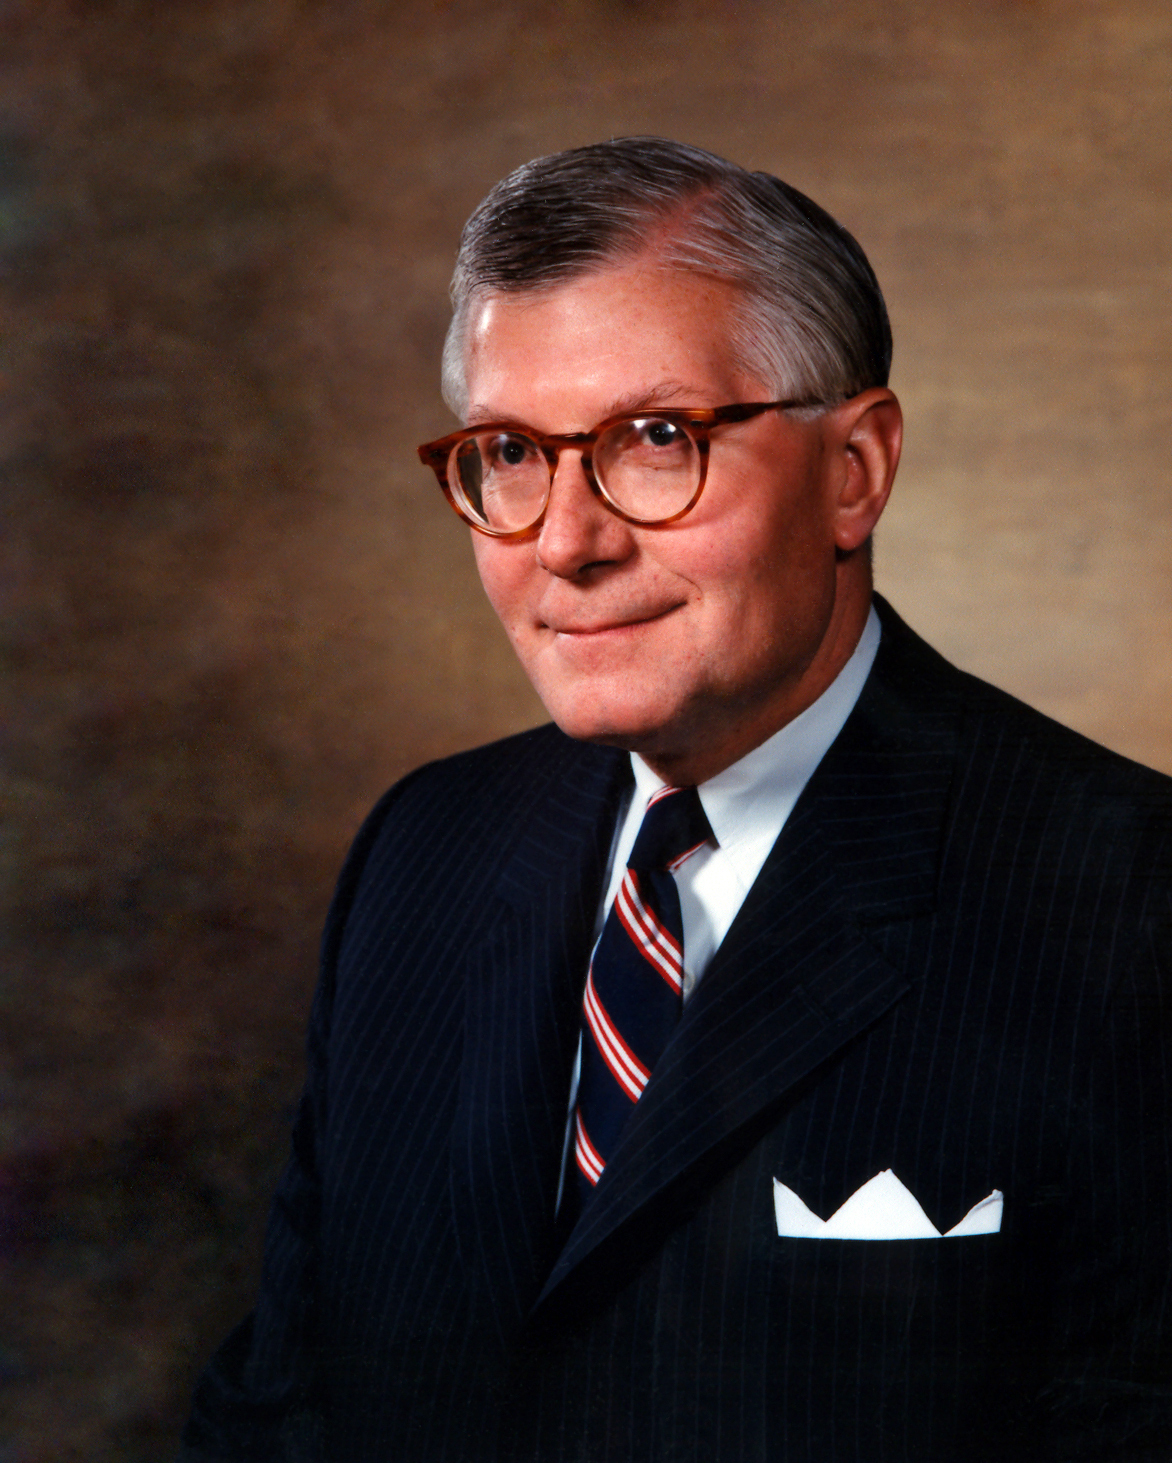 William S. Dietrich II, a former steel executive and current Carnegie Mellon trustee, made a $265 million gift to the university. (credit: Courtesy of Carnegie Mellon University)